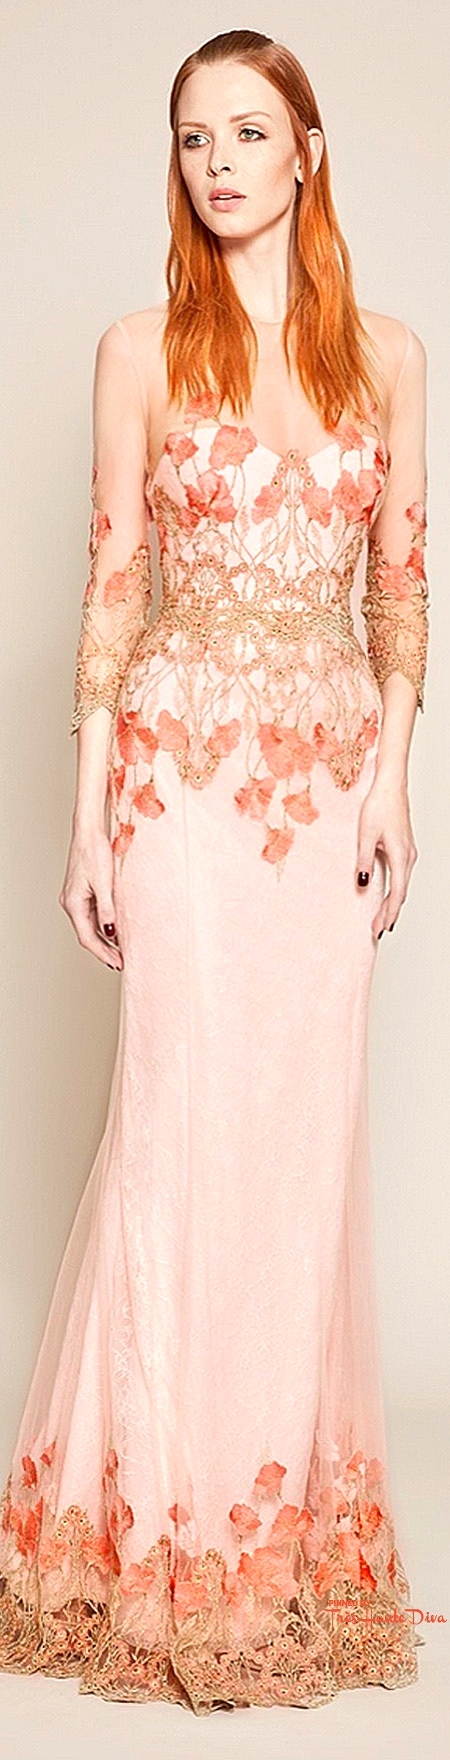 Marchesa Notte Resort 2016